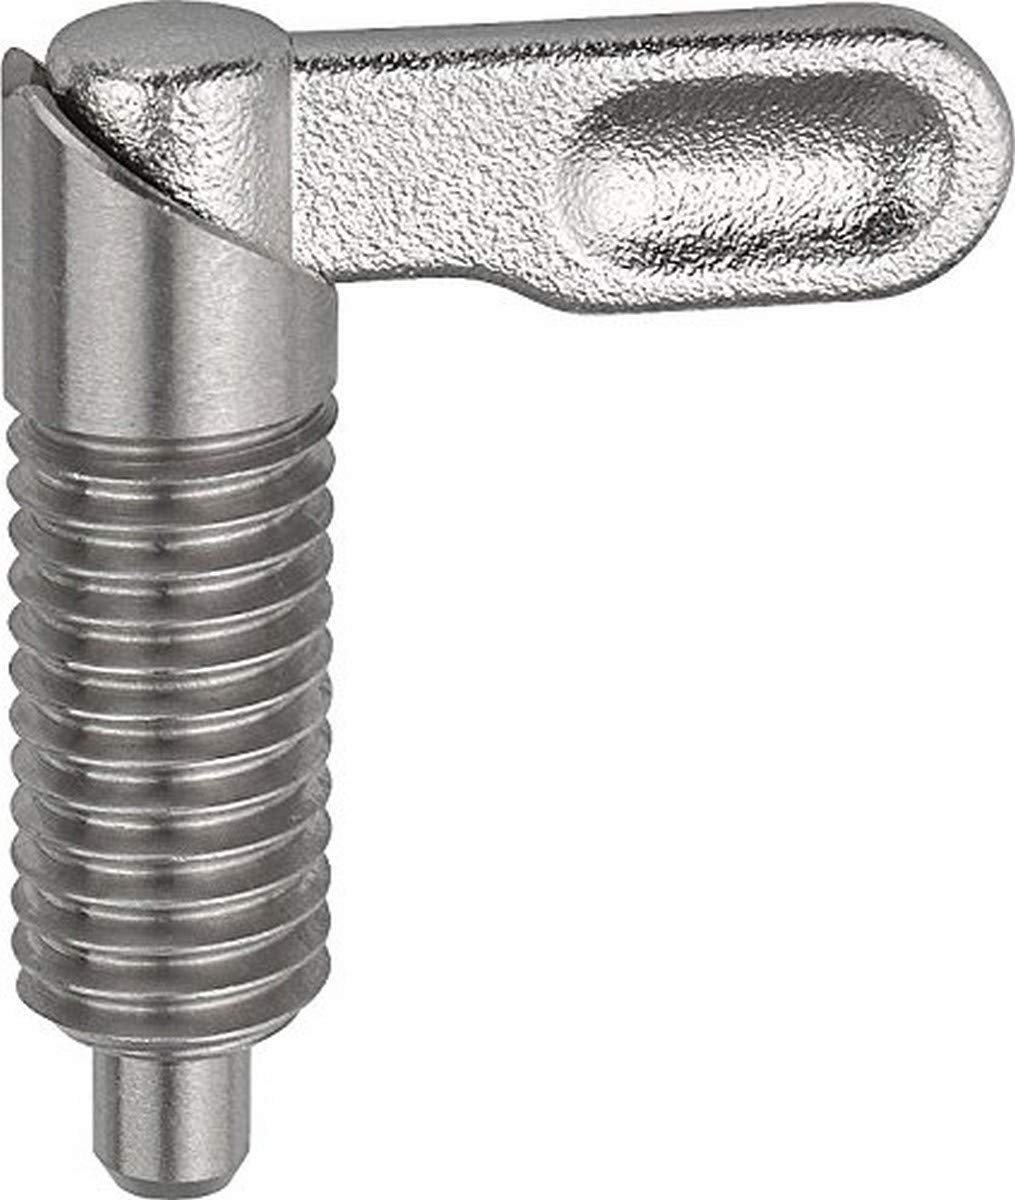 KIPP 03099-10408A6 STAINLESS STEEL CAM ACTION INDEXING PLUNGER STYLE A INCH NATURAL FINISH 8 MM LOCKING PIN DIAMETER 5   8-11 THREAD